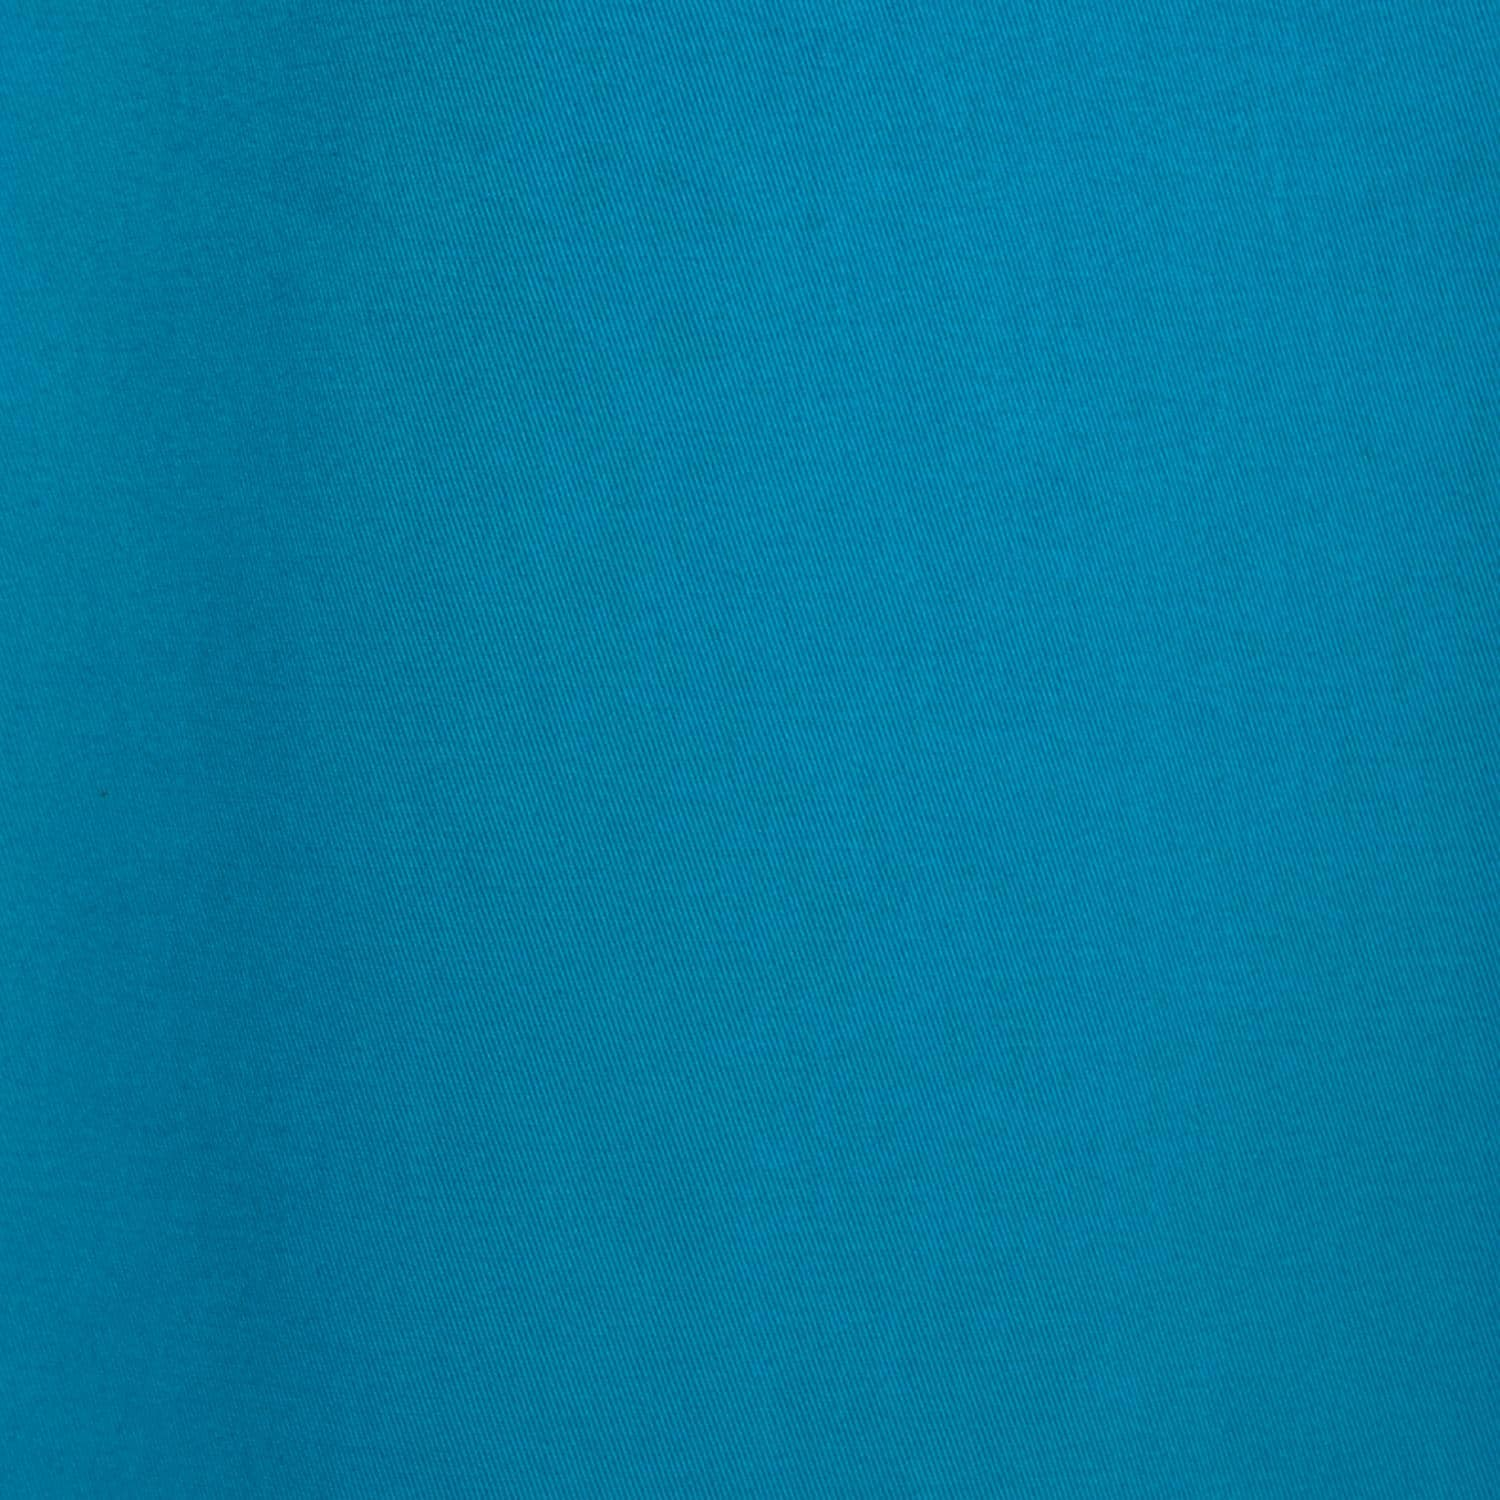 Capri Teal Cotton Twill